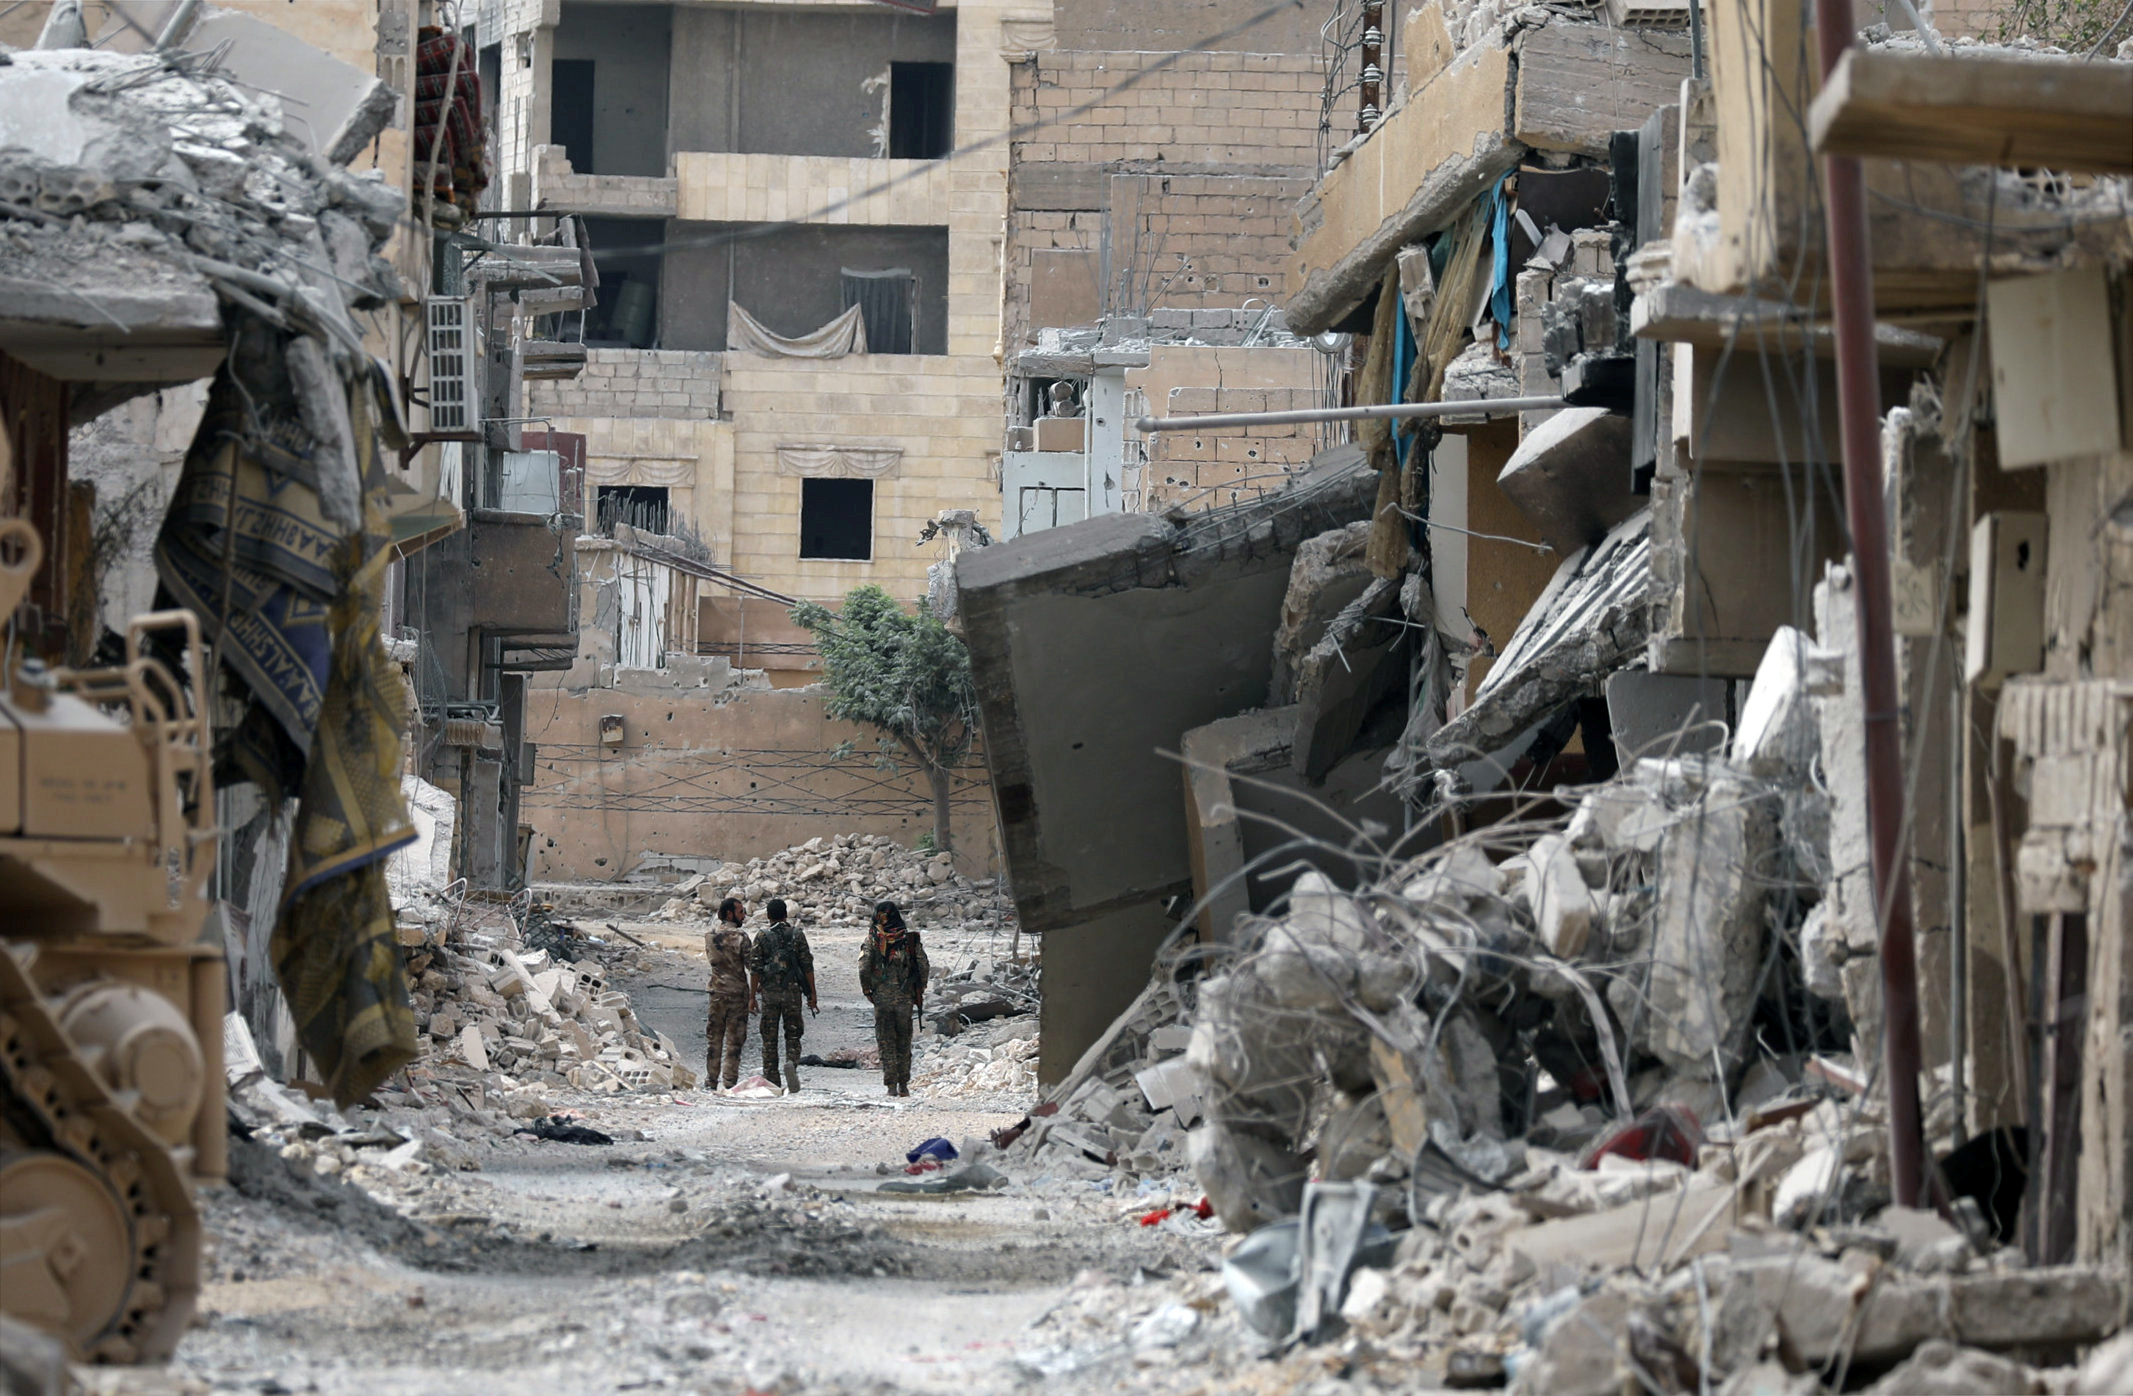 Fighters from Syrian Democratic Forces (SDF) walk together along a damaged street in Raqqa, Syria on Sept. 16, 2017. (REUTERS/ Rodi Said)